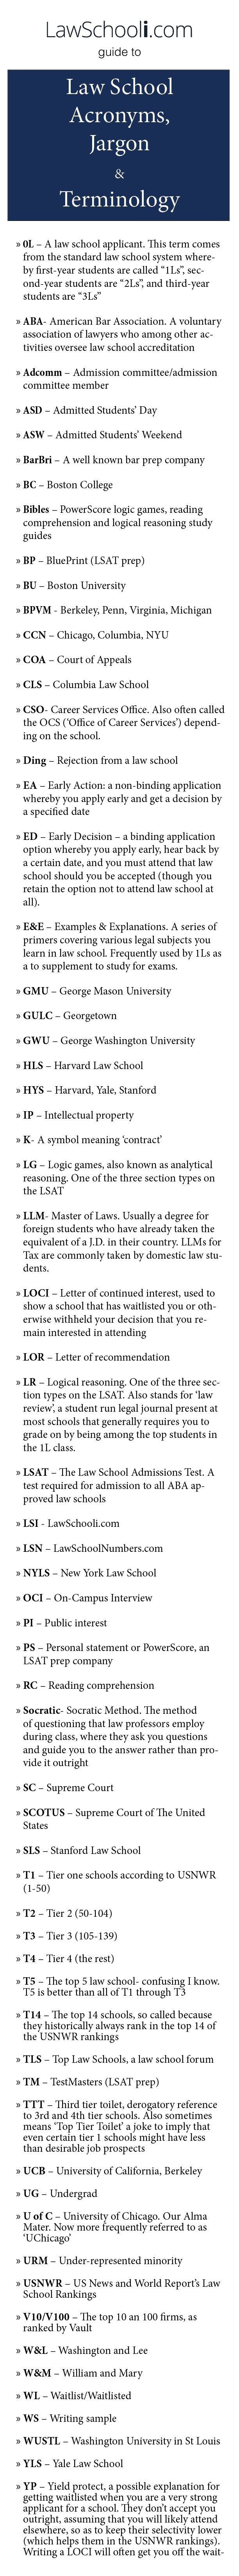 110 best lsat beyond images on pinterest english learning and law school acronyms jargon and terminology malvernweather Image collections